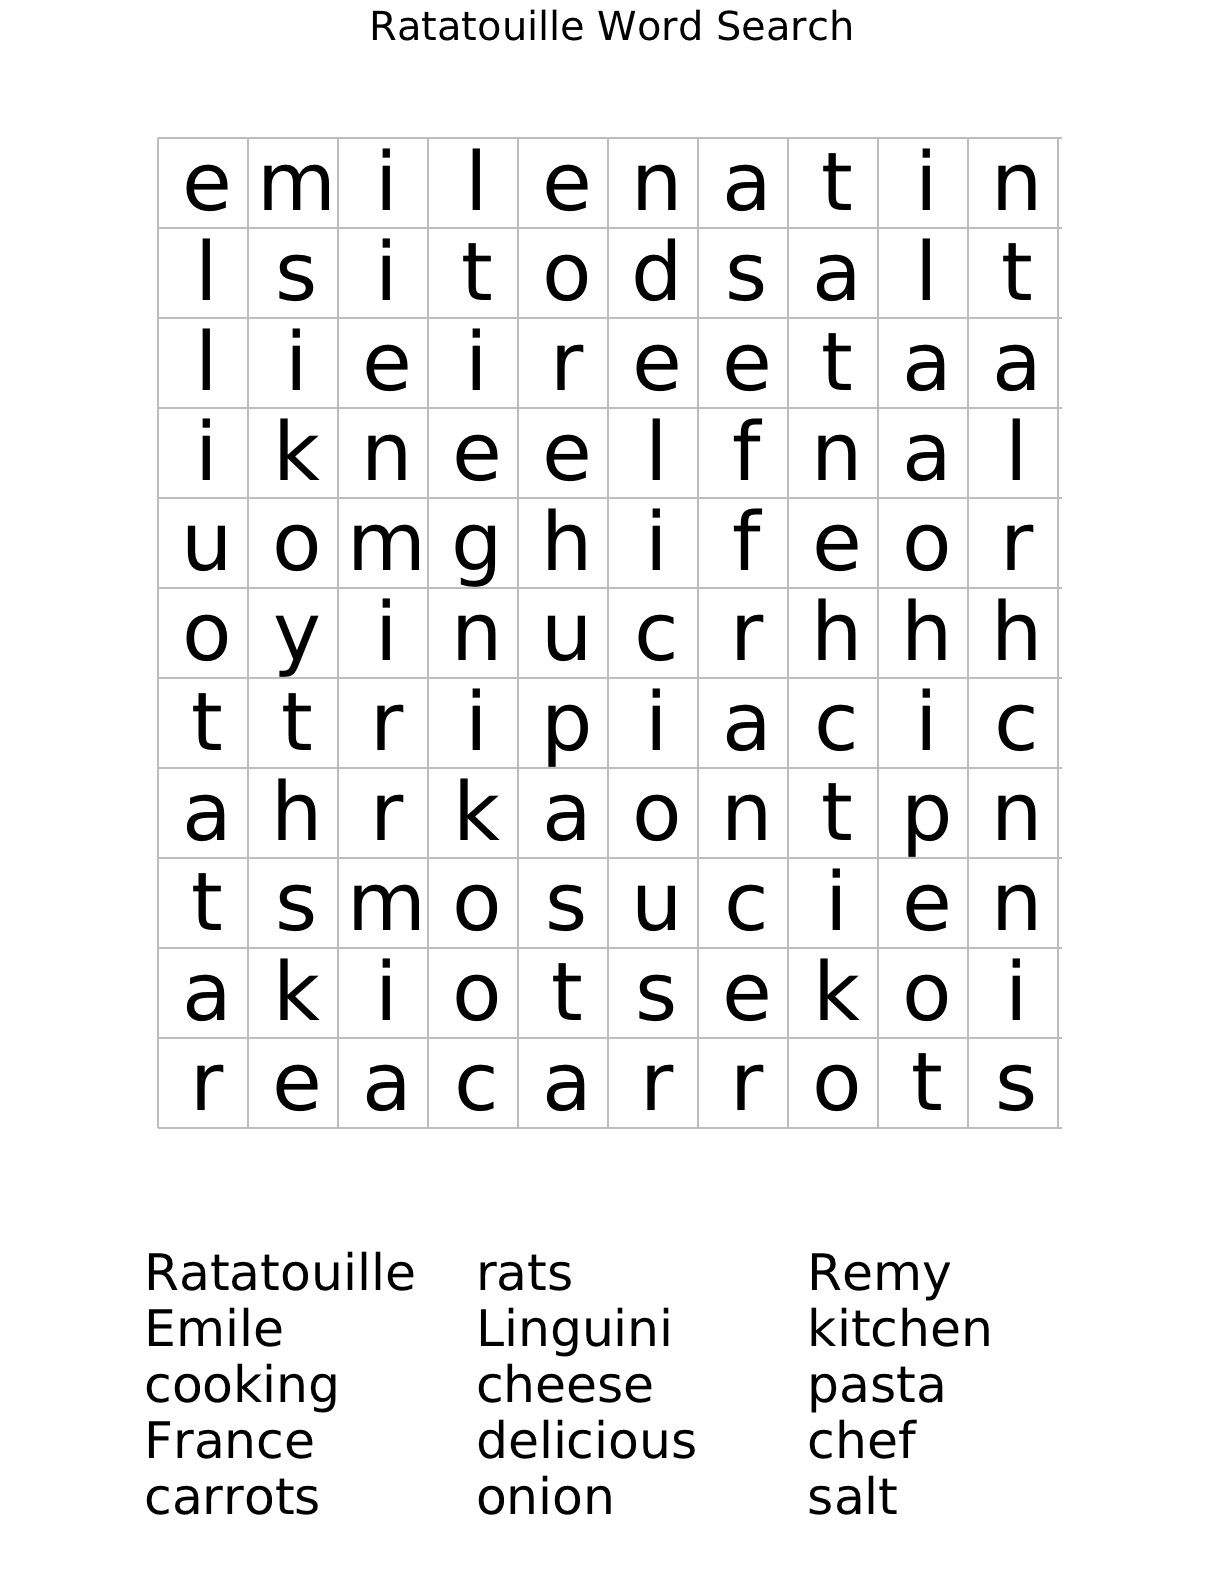 Ratatouille Word Search Worksheet | Free Math Worksheets | Free Printable Math Word Search Worksheets